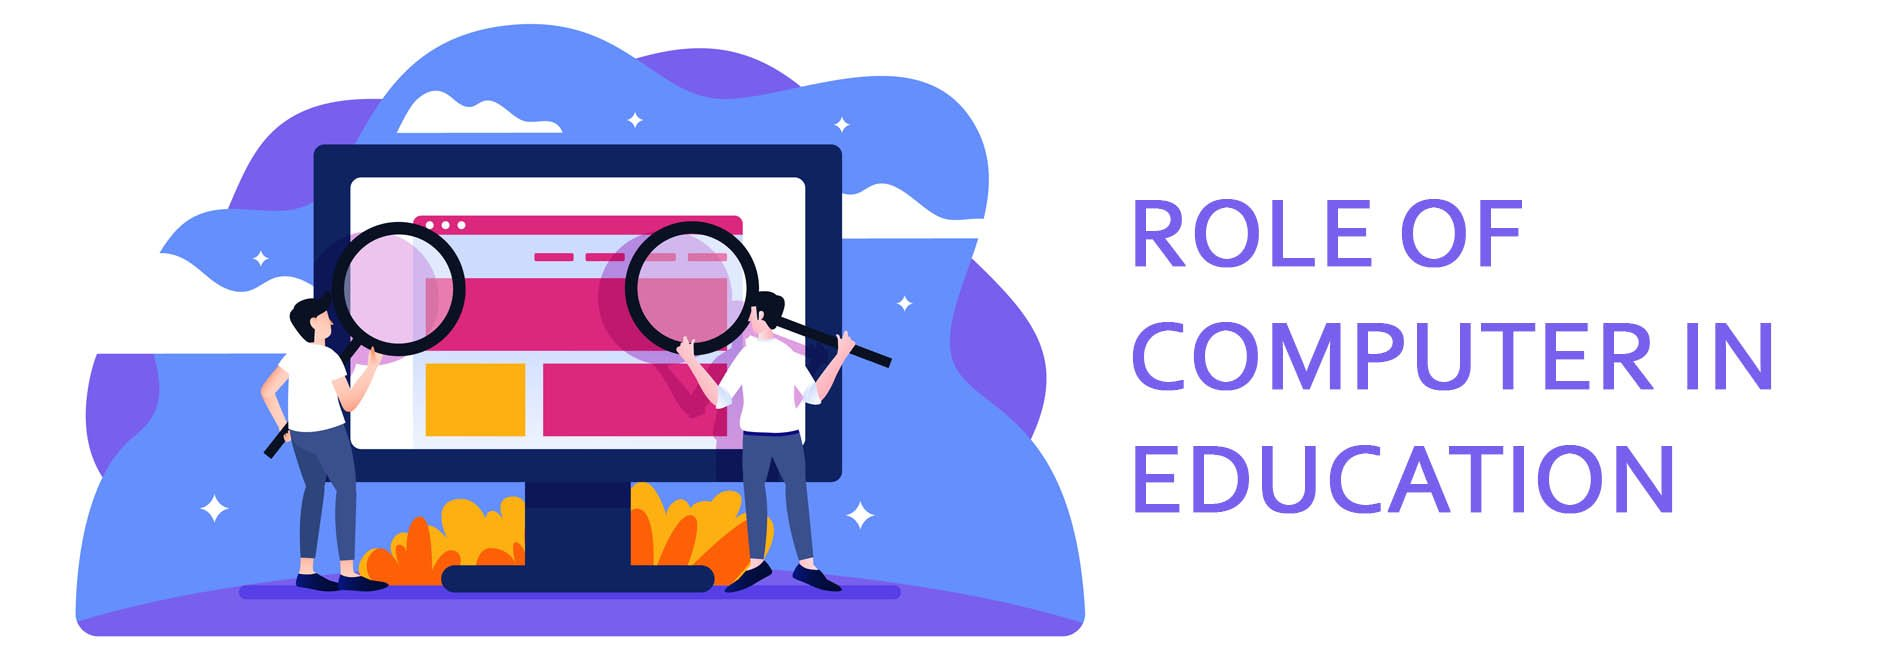 role-of-computer-in-education